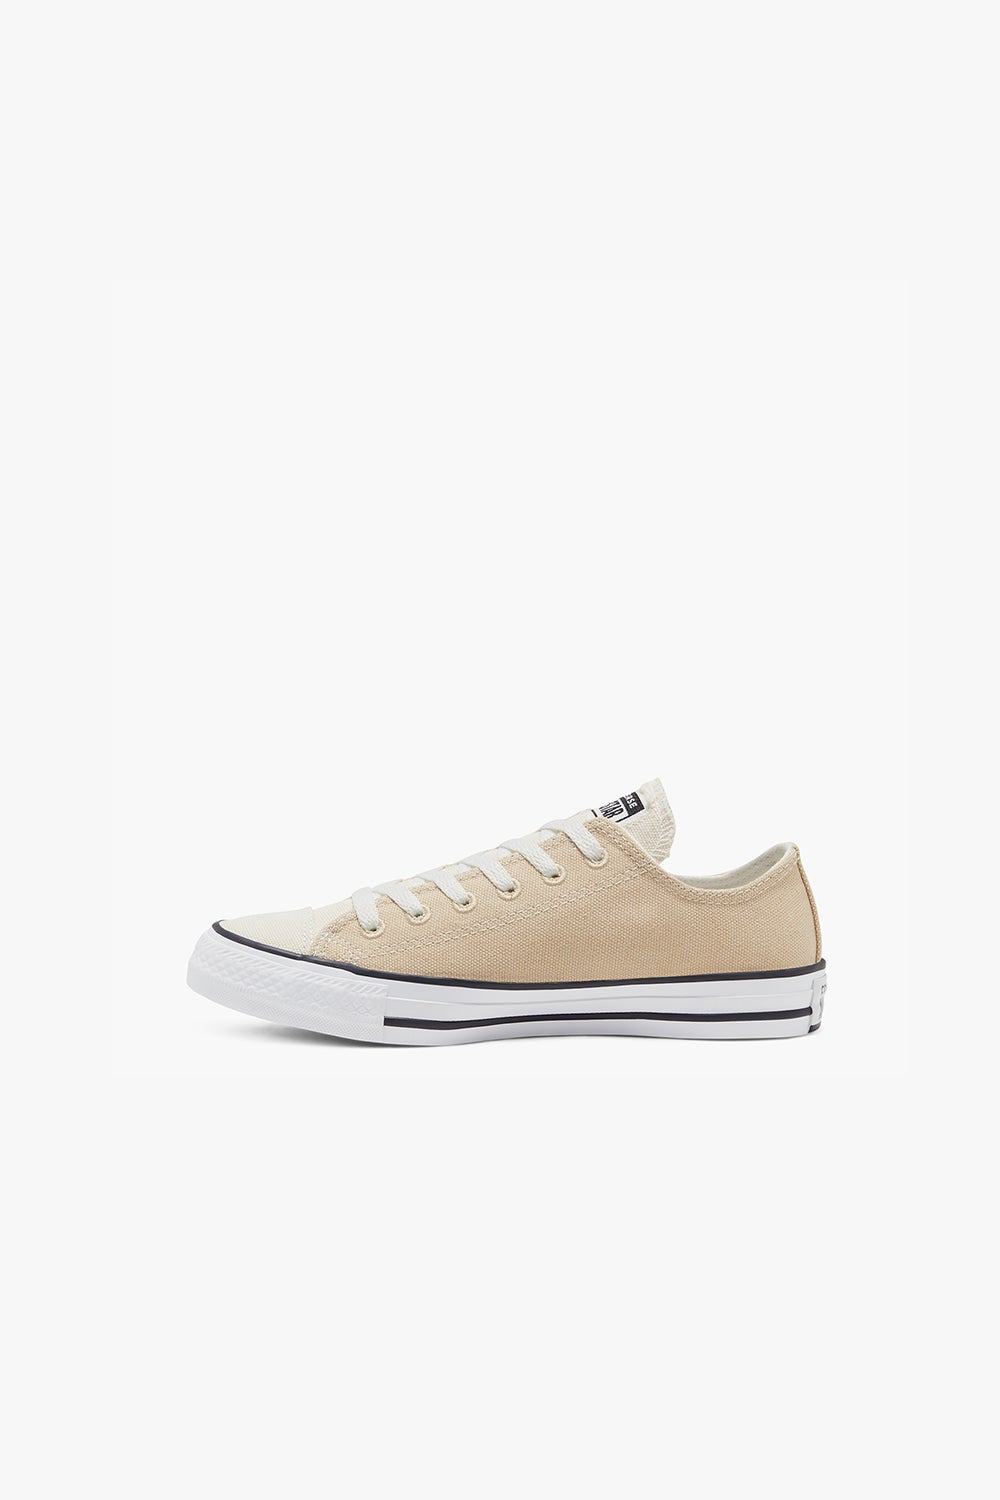 Converse Chuck Taylor All Star Renew Cotton Desert Ore